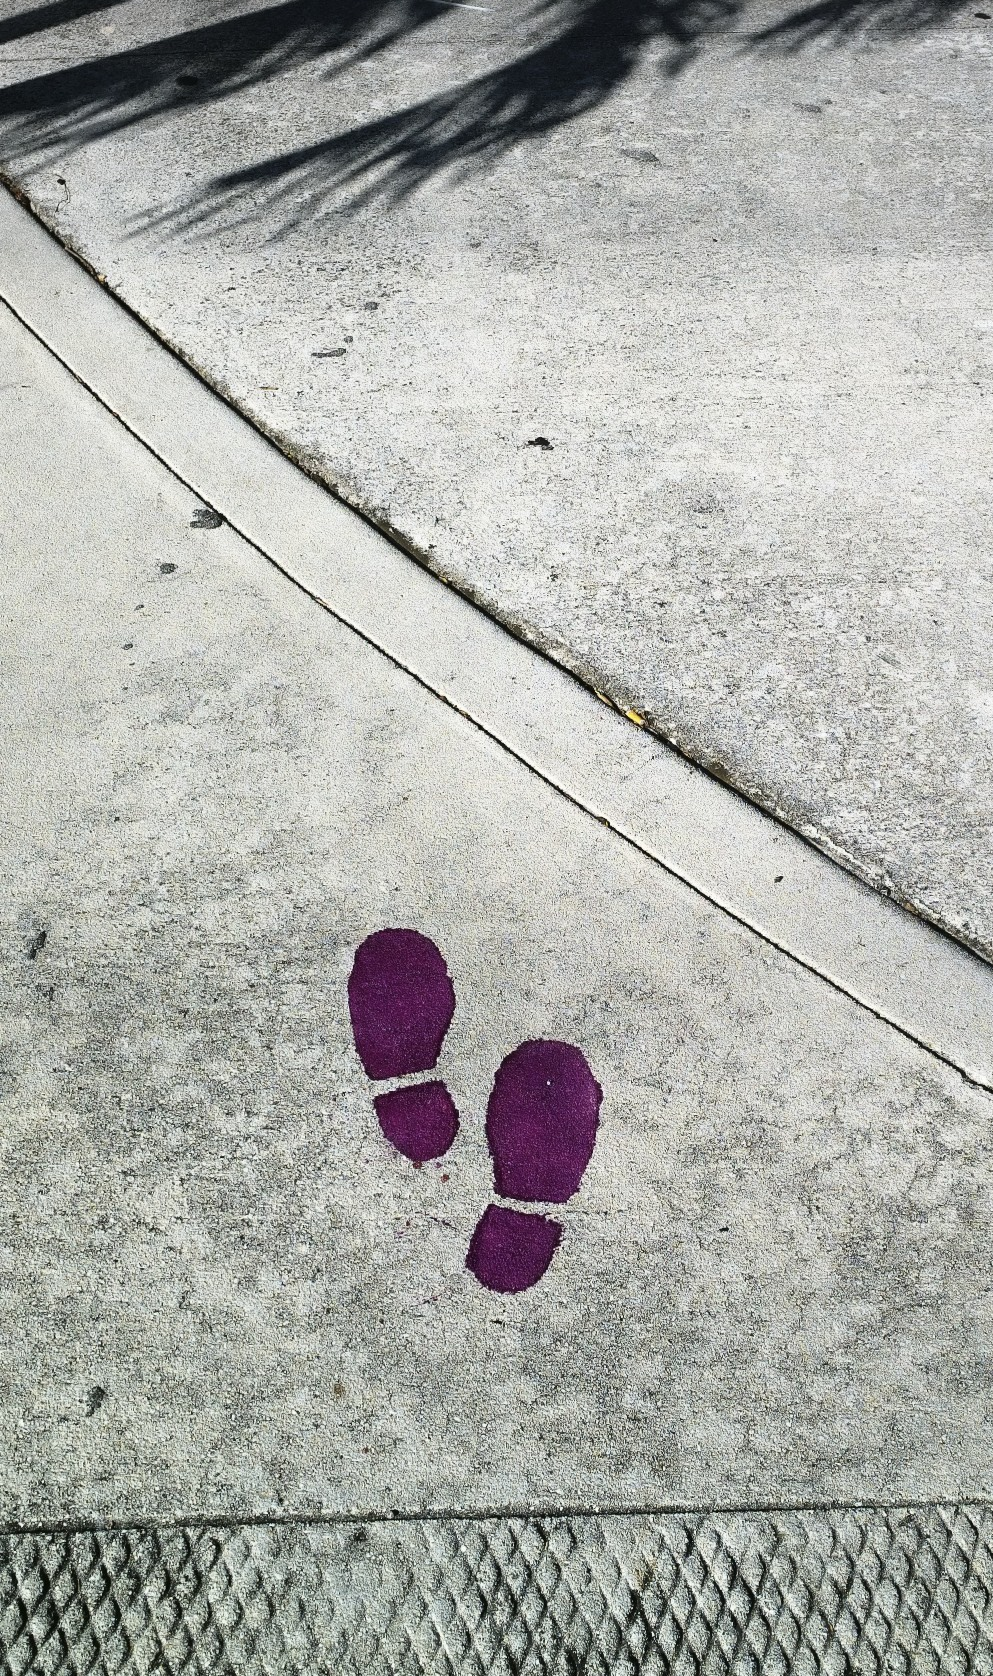 Sidewalk with painted footprints in Northwood, FL